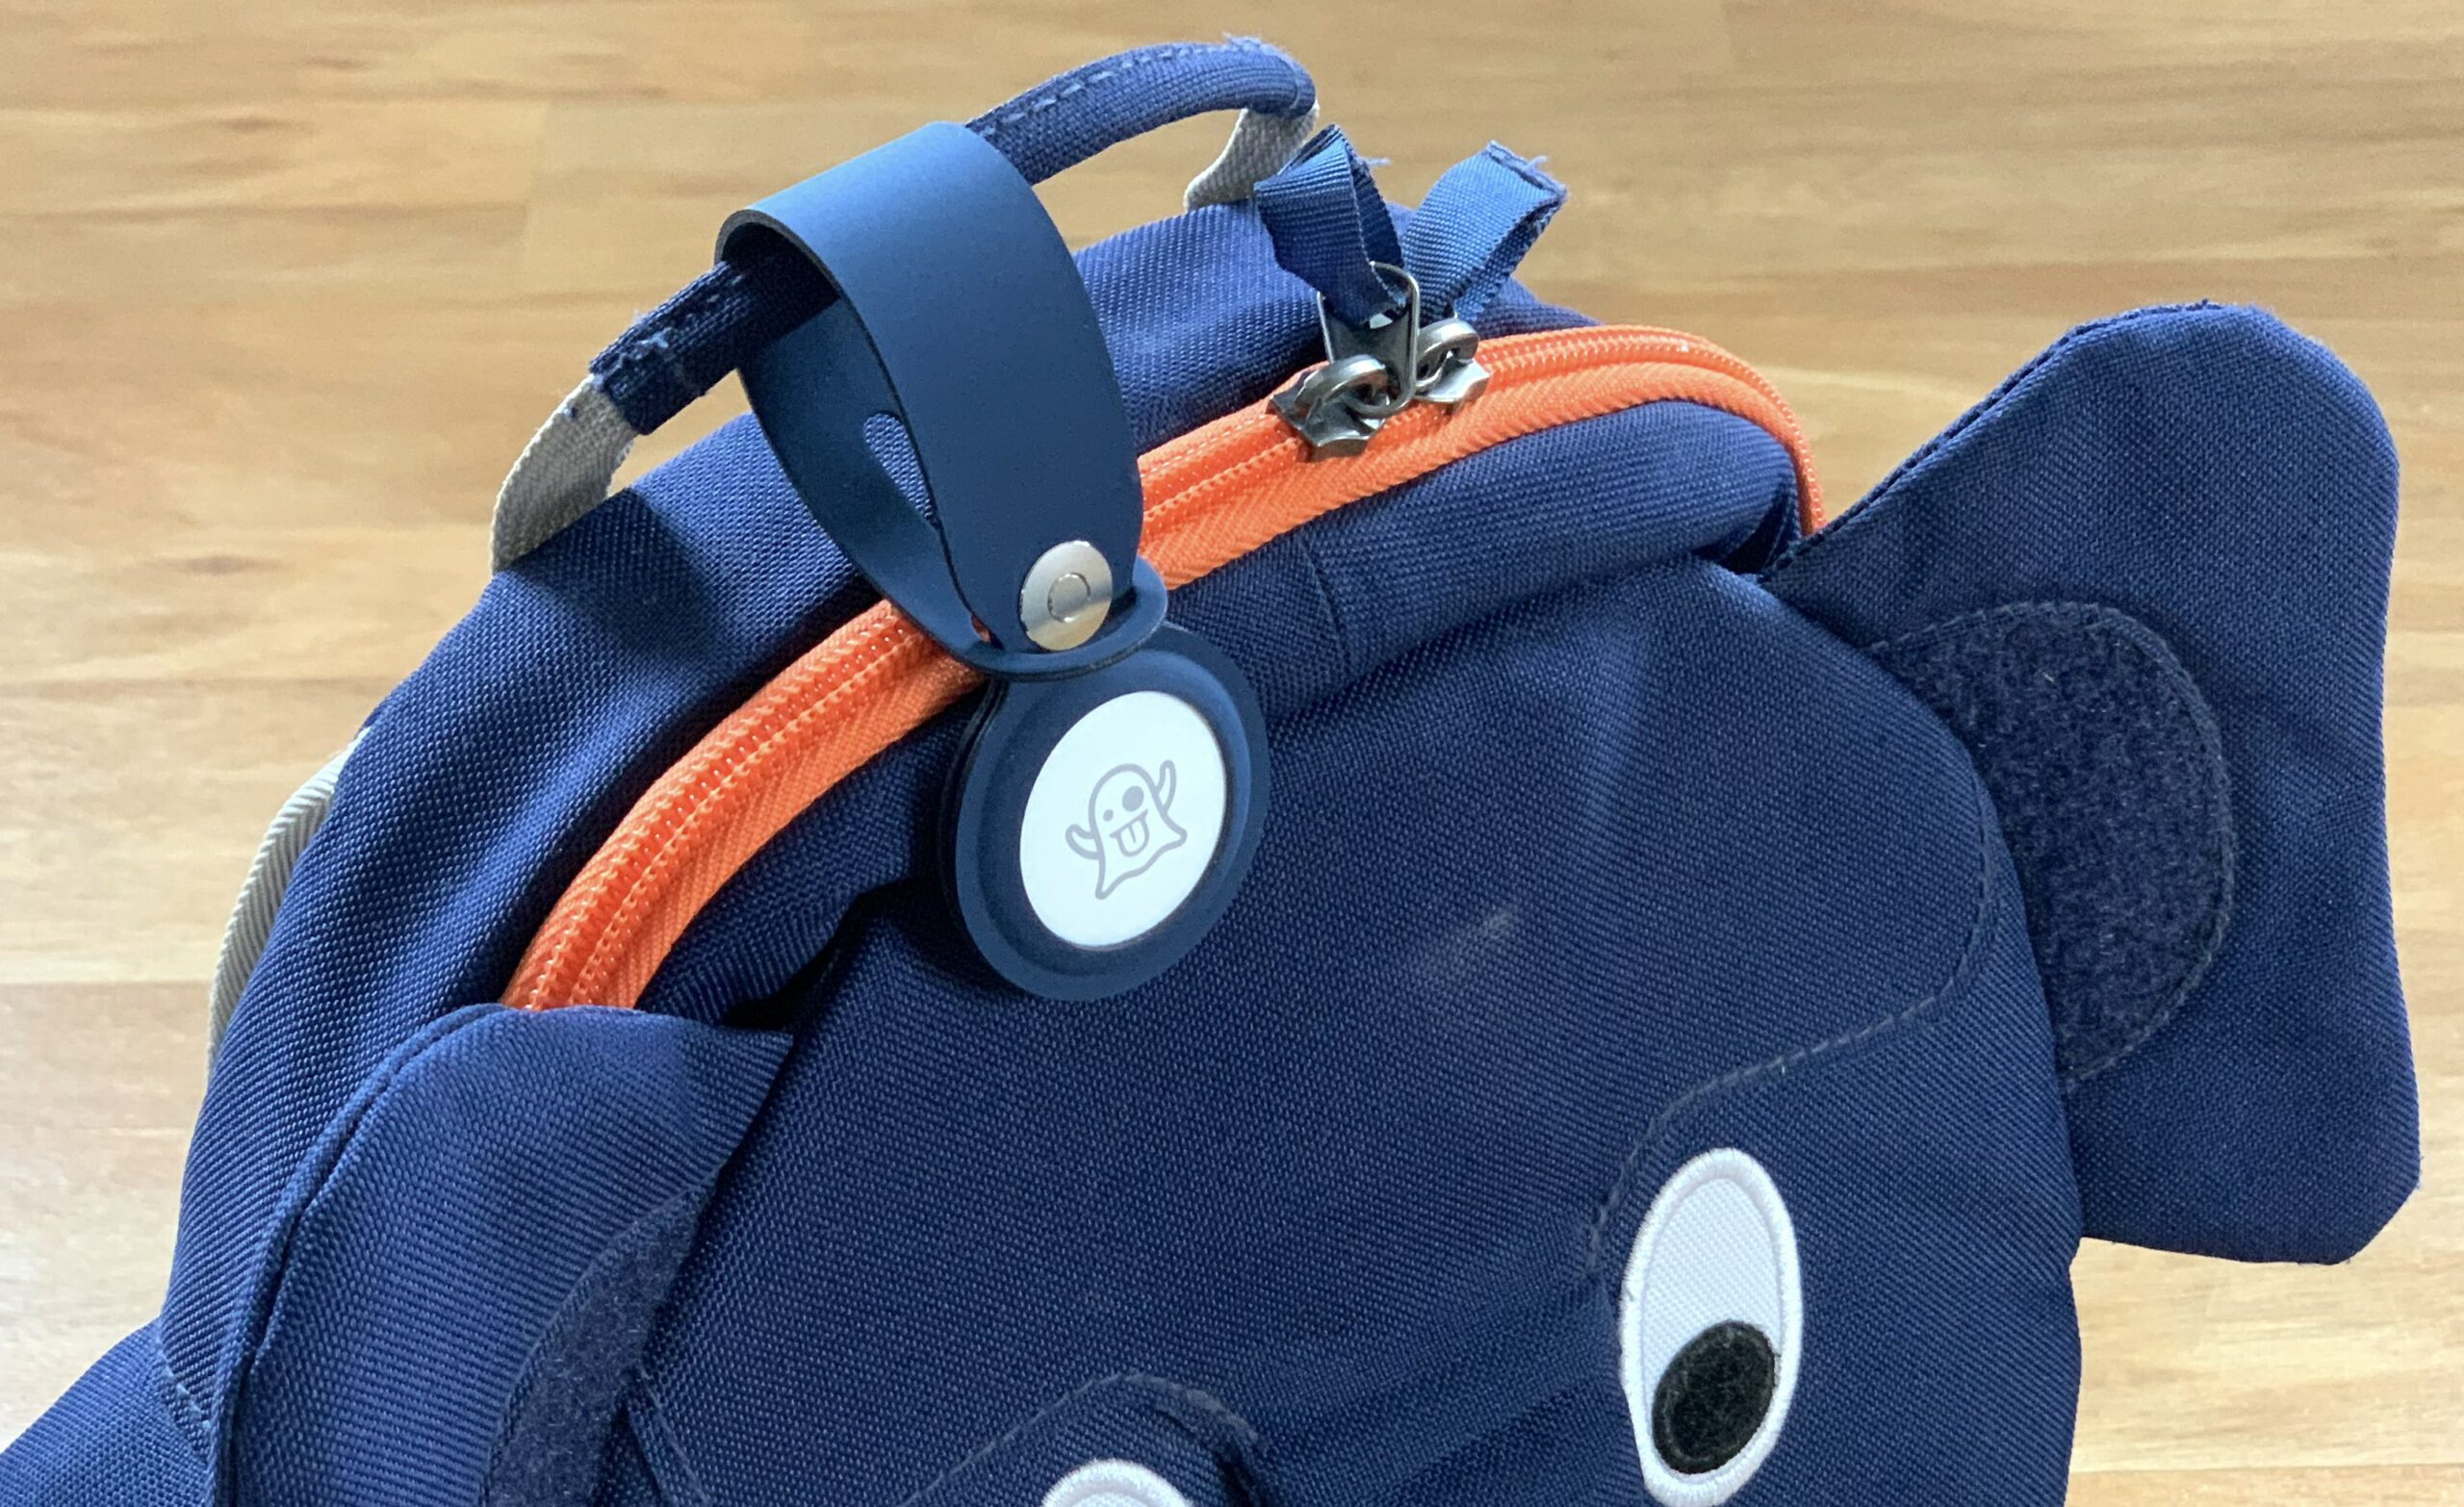 Apple AirTag on backpack